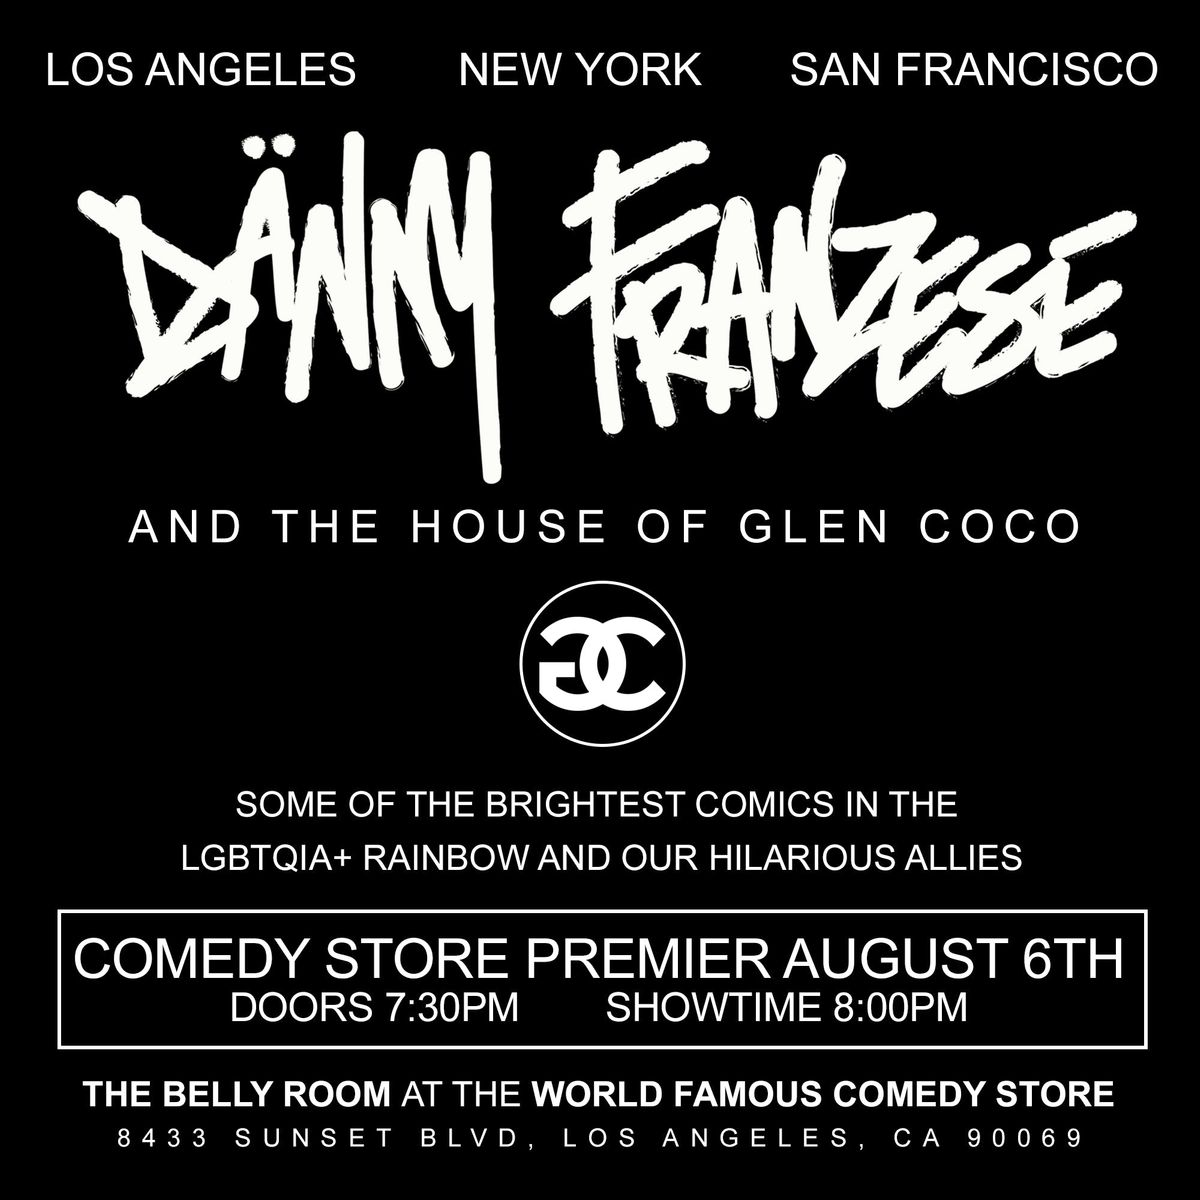 Danny Franzese and The House Of Glen Coco at The Comedy